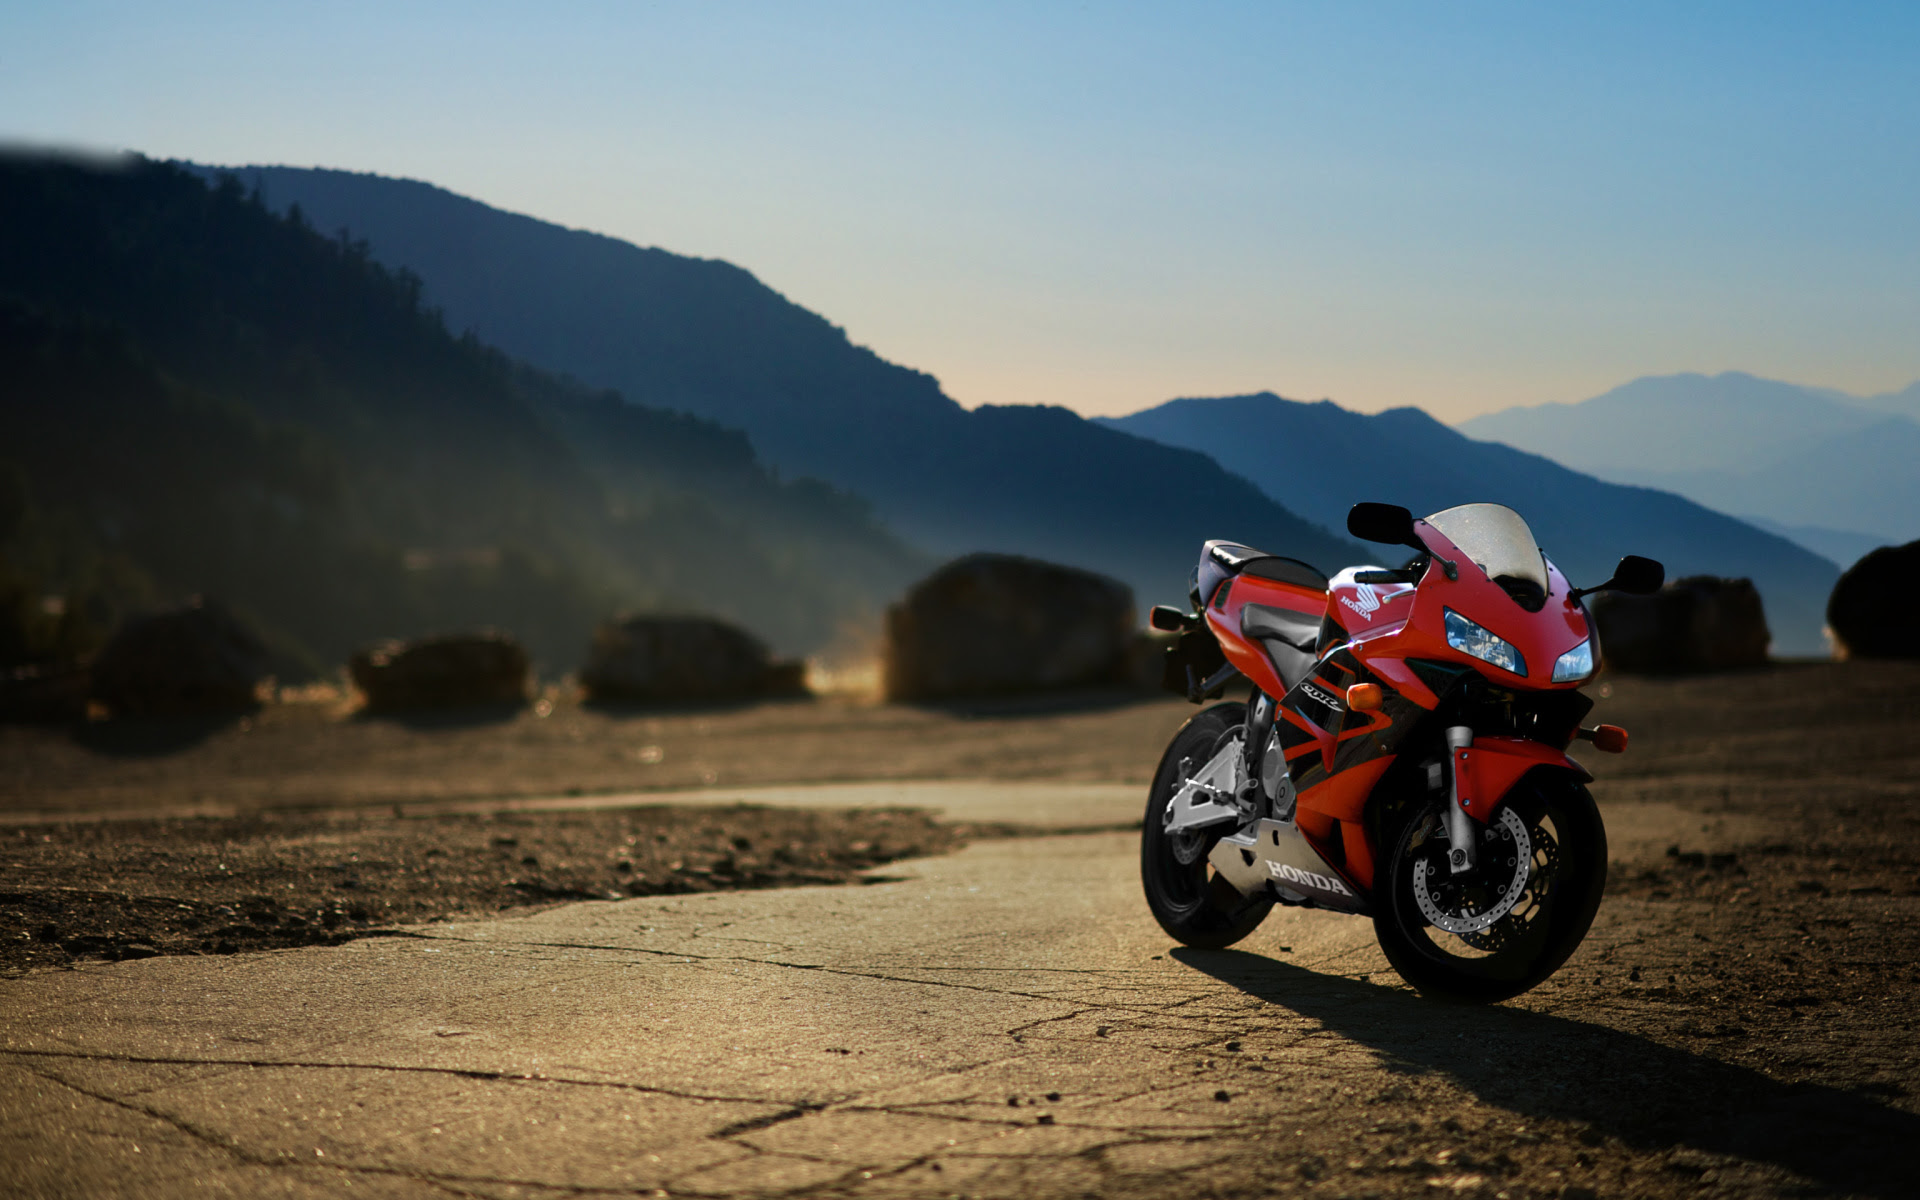 Honda CBR 600RR, HD Birds, 4k Wallpapers, Images, Backgrounds, Photos and Pictures